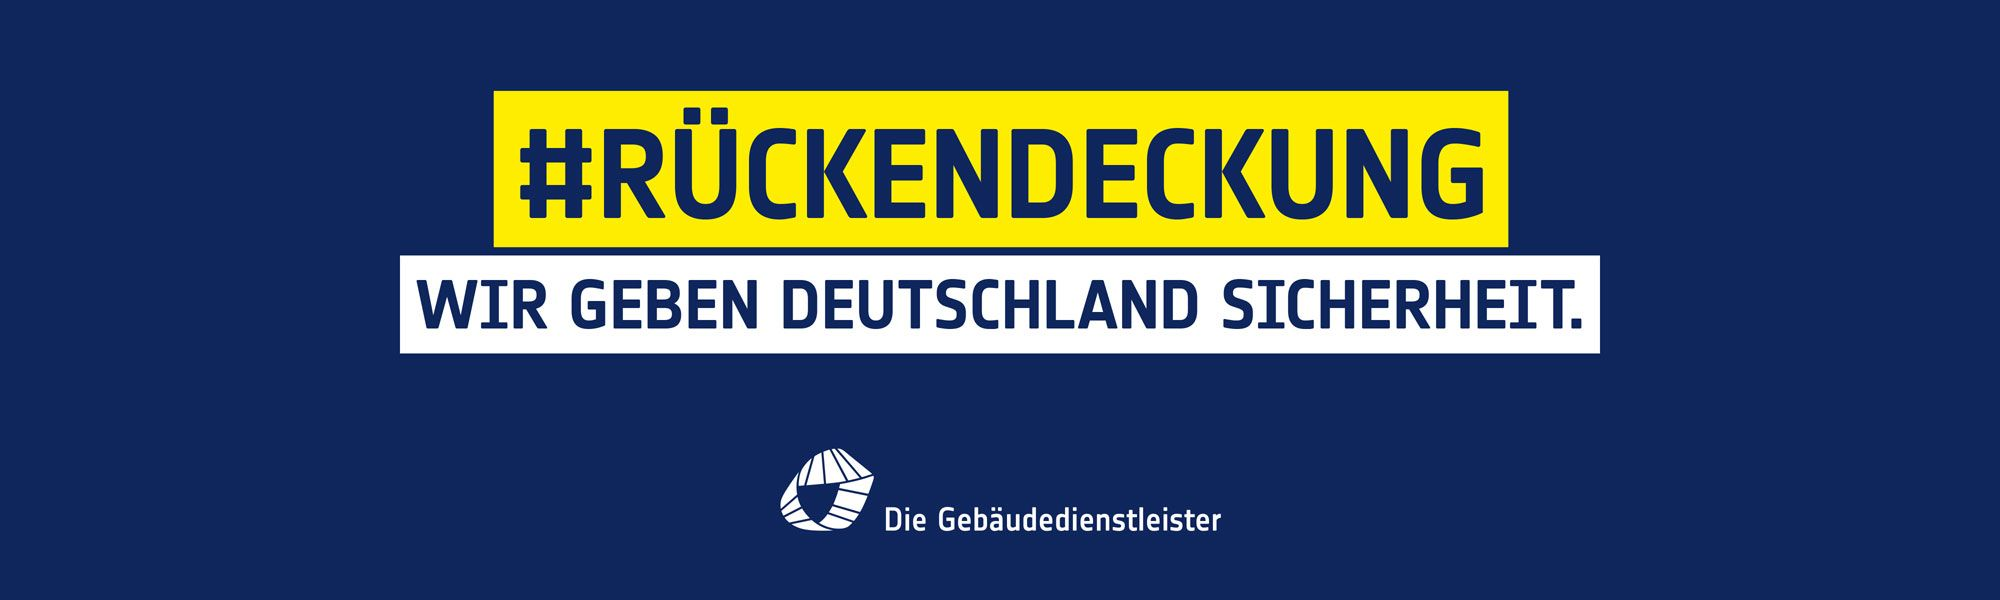 Gebaeubedienstleister_Website_Banner